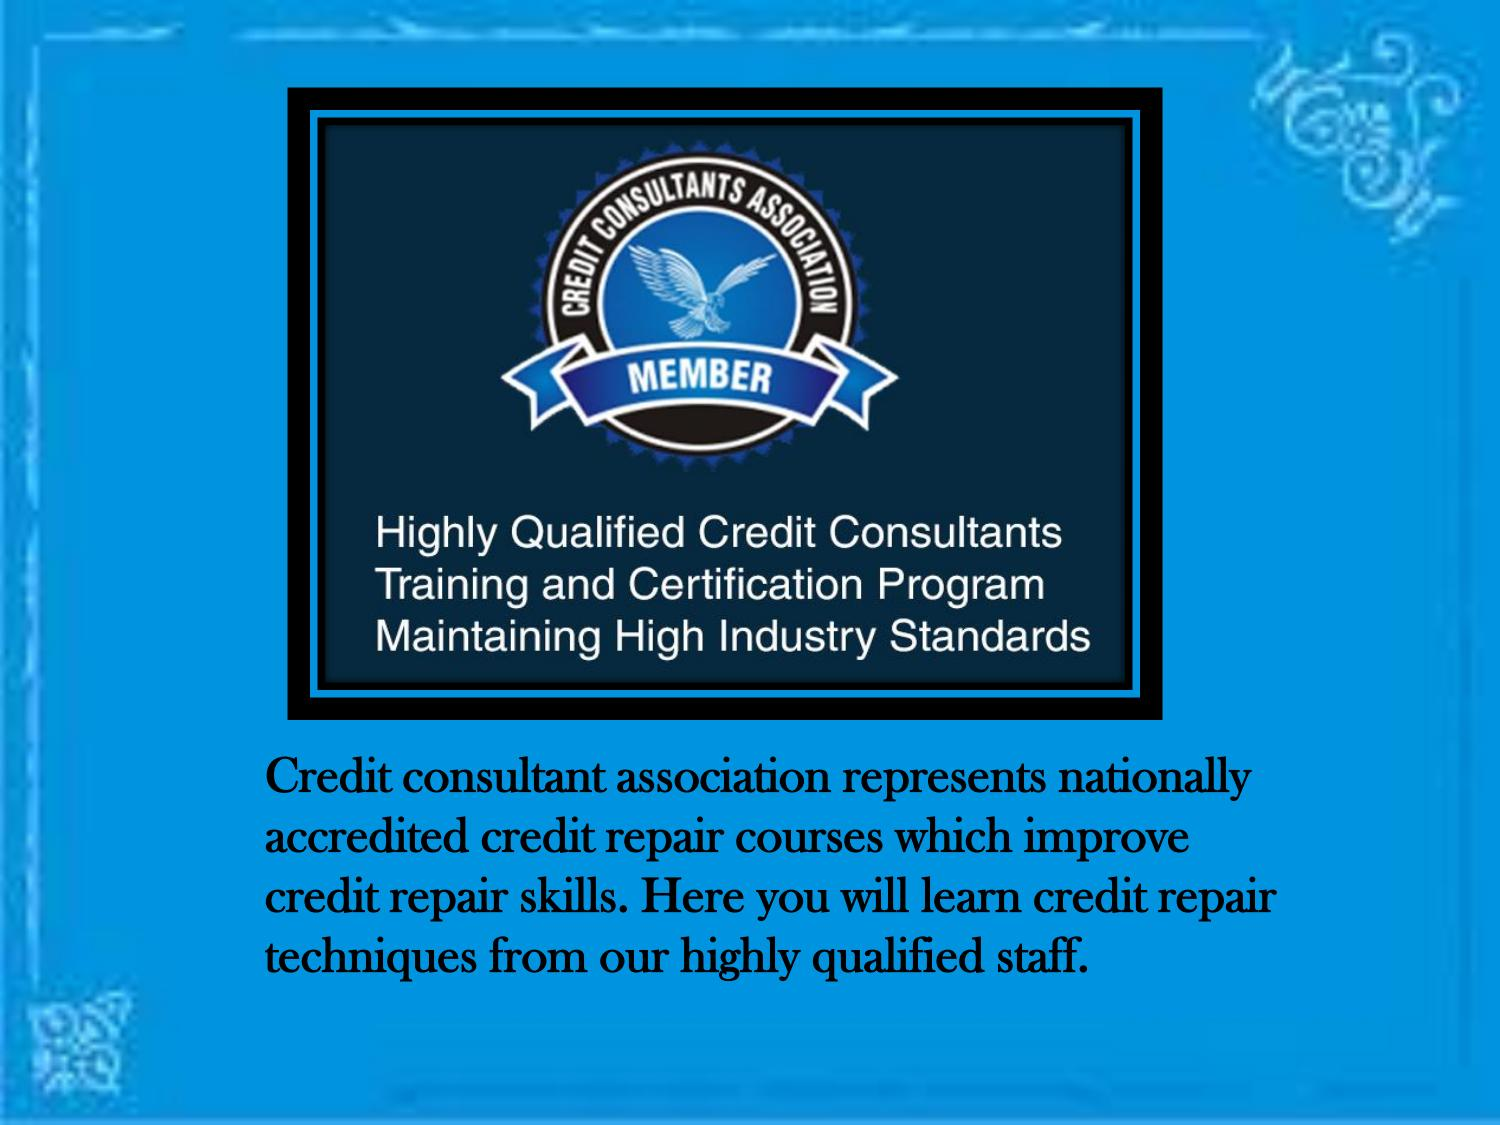 Learn How To Start Your Own Credit Repair Company From Proficient By